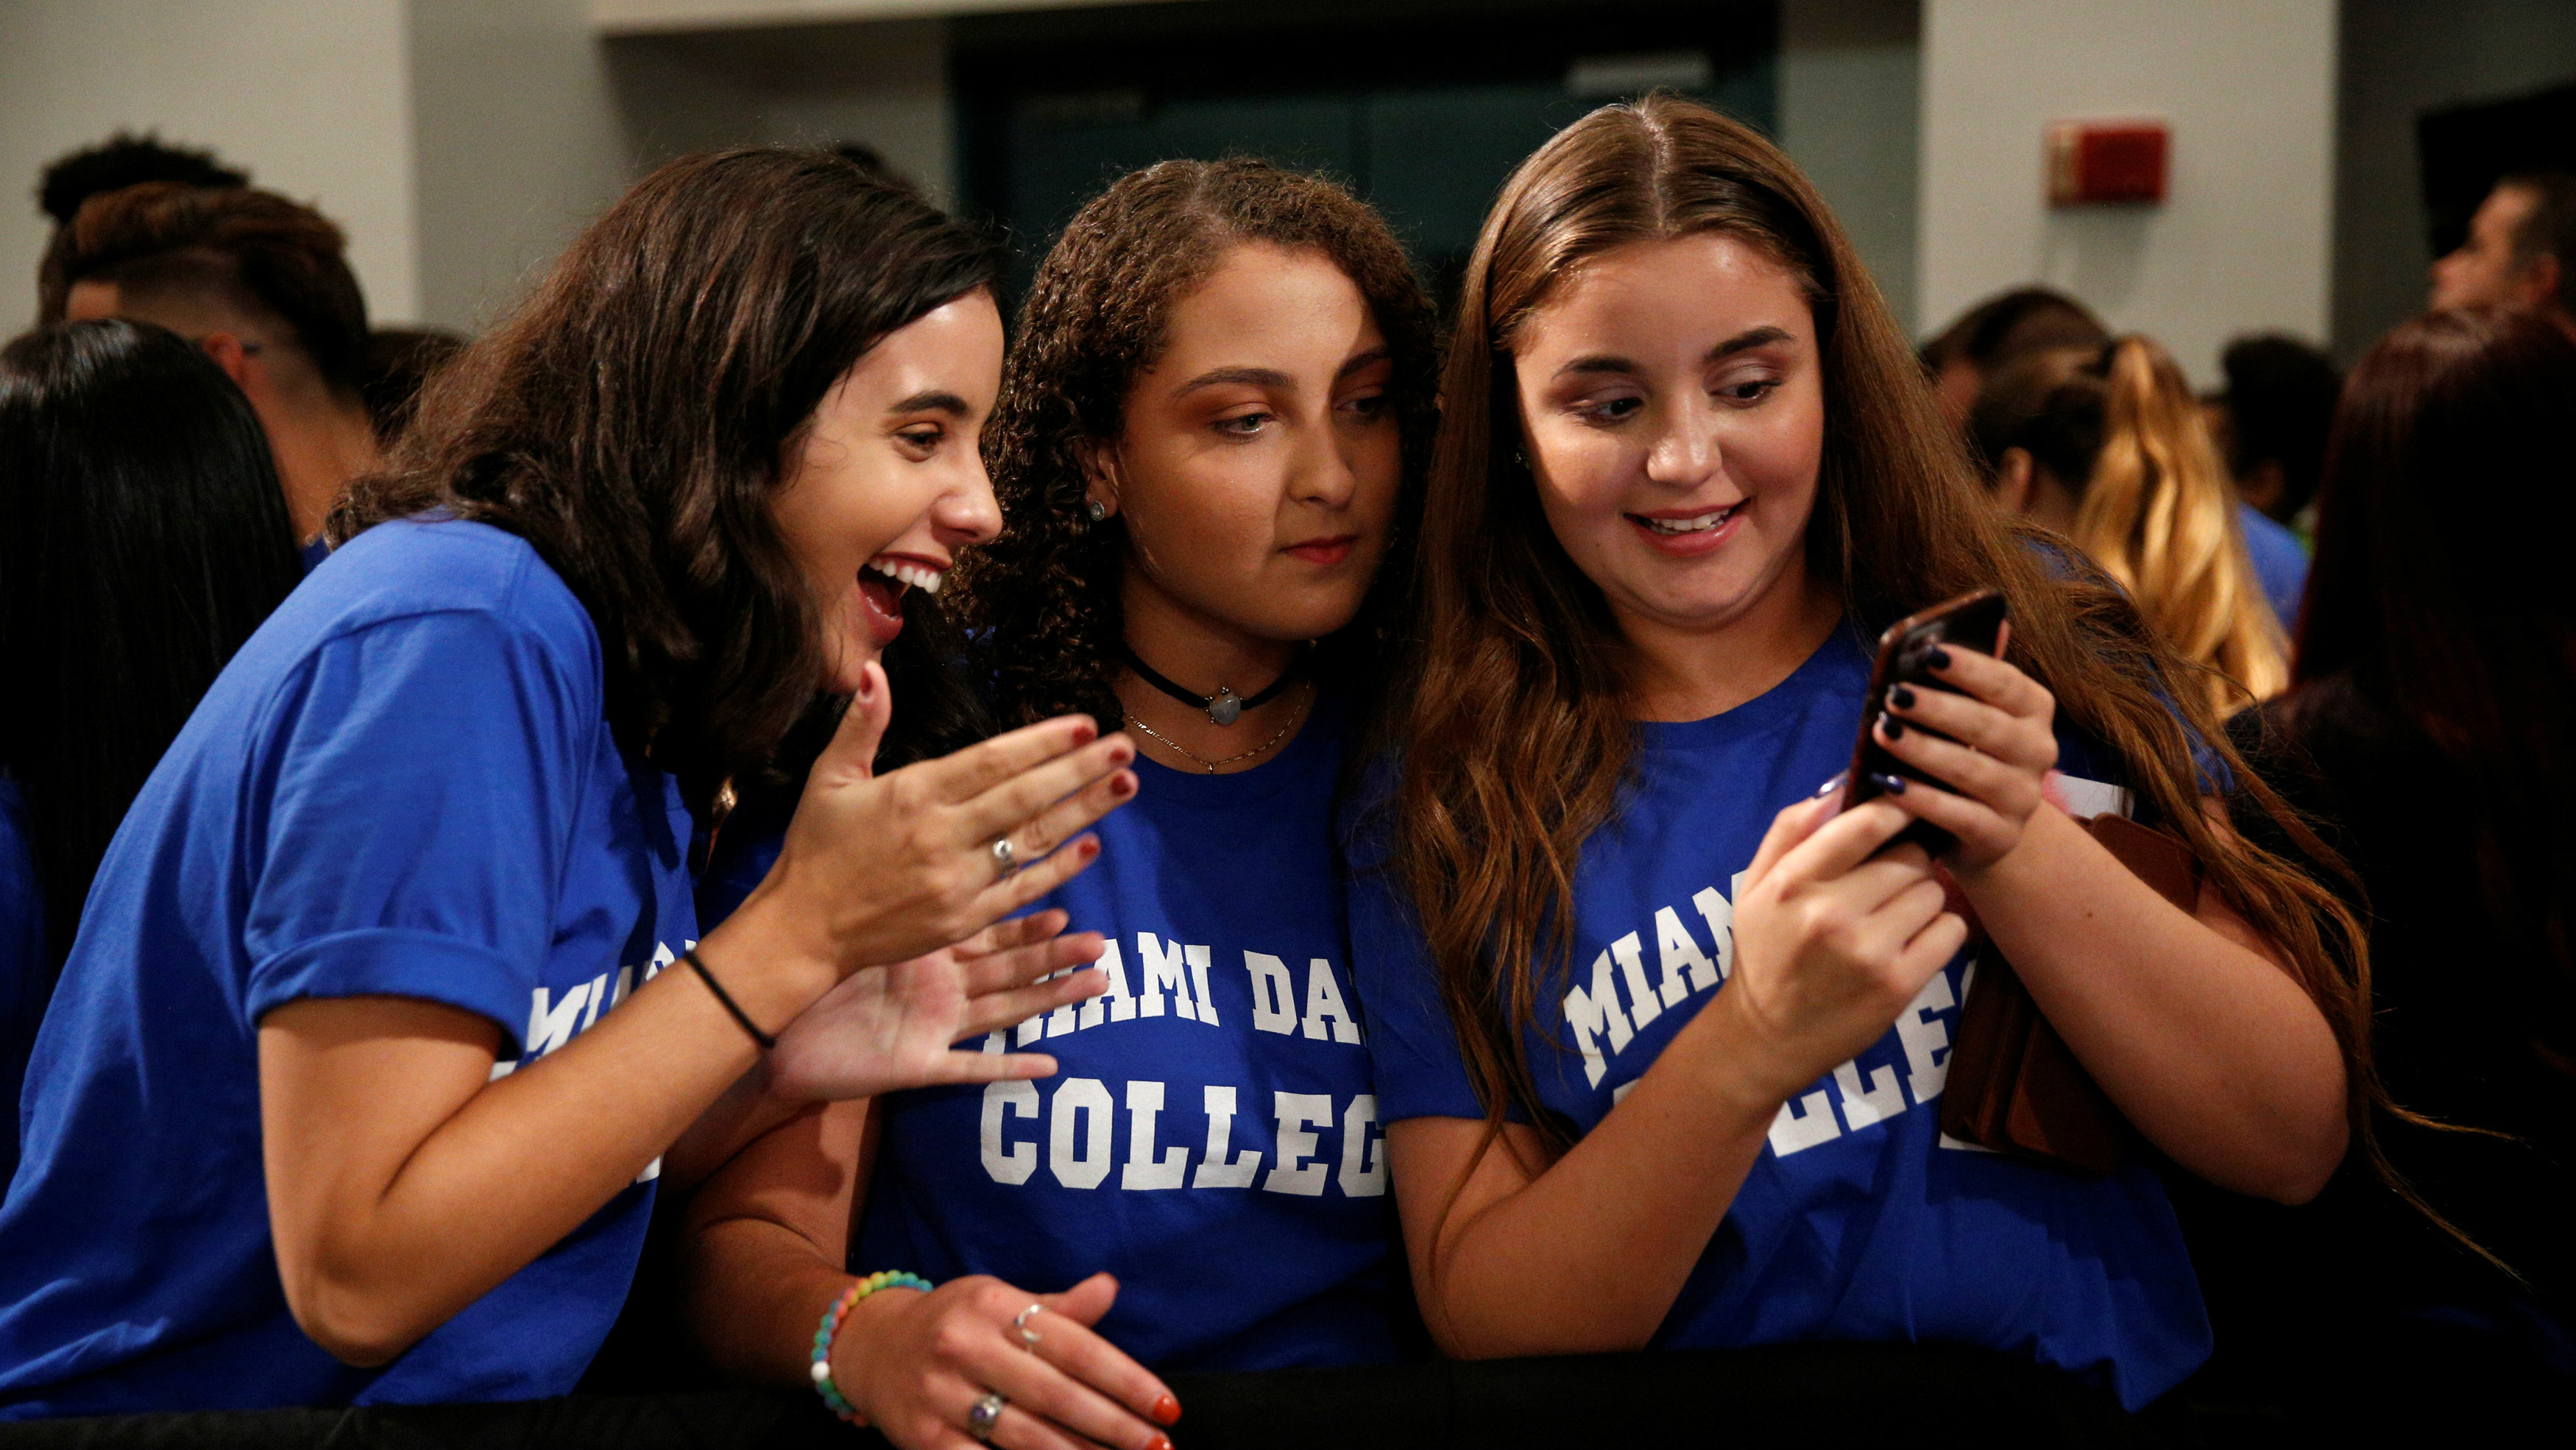 More Teens Would Rather Text Their Friends Than Hang Out Irl